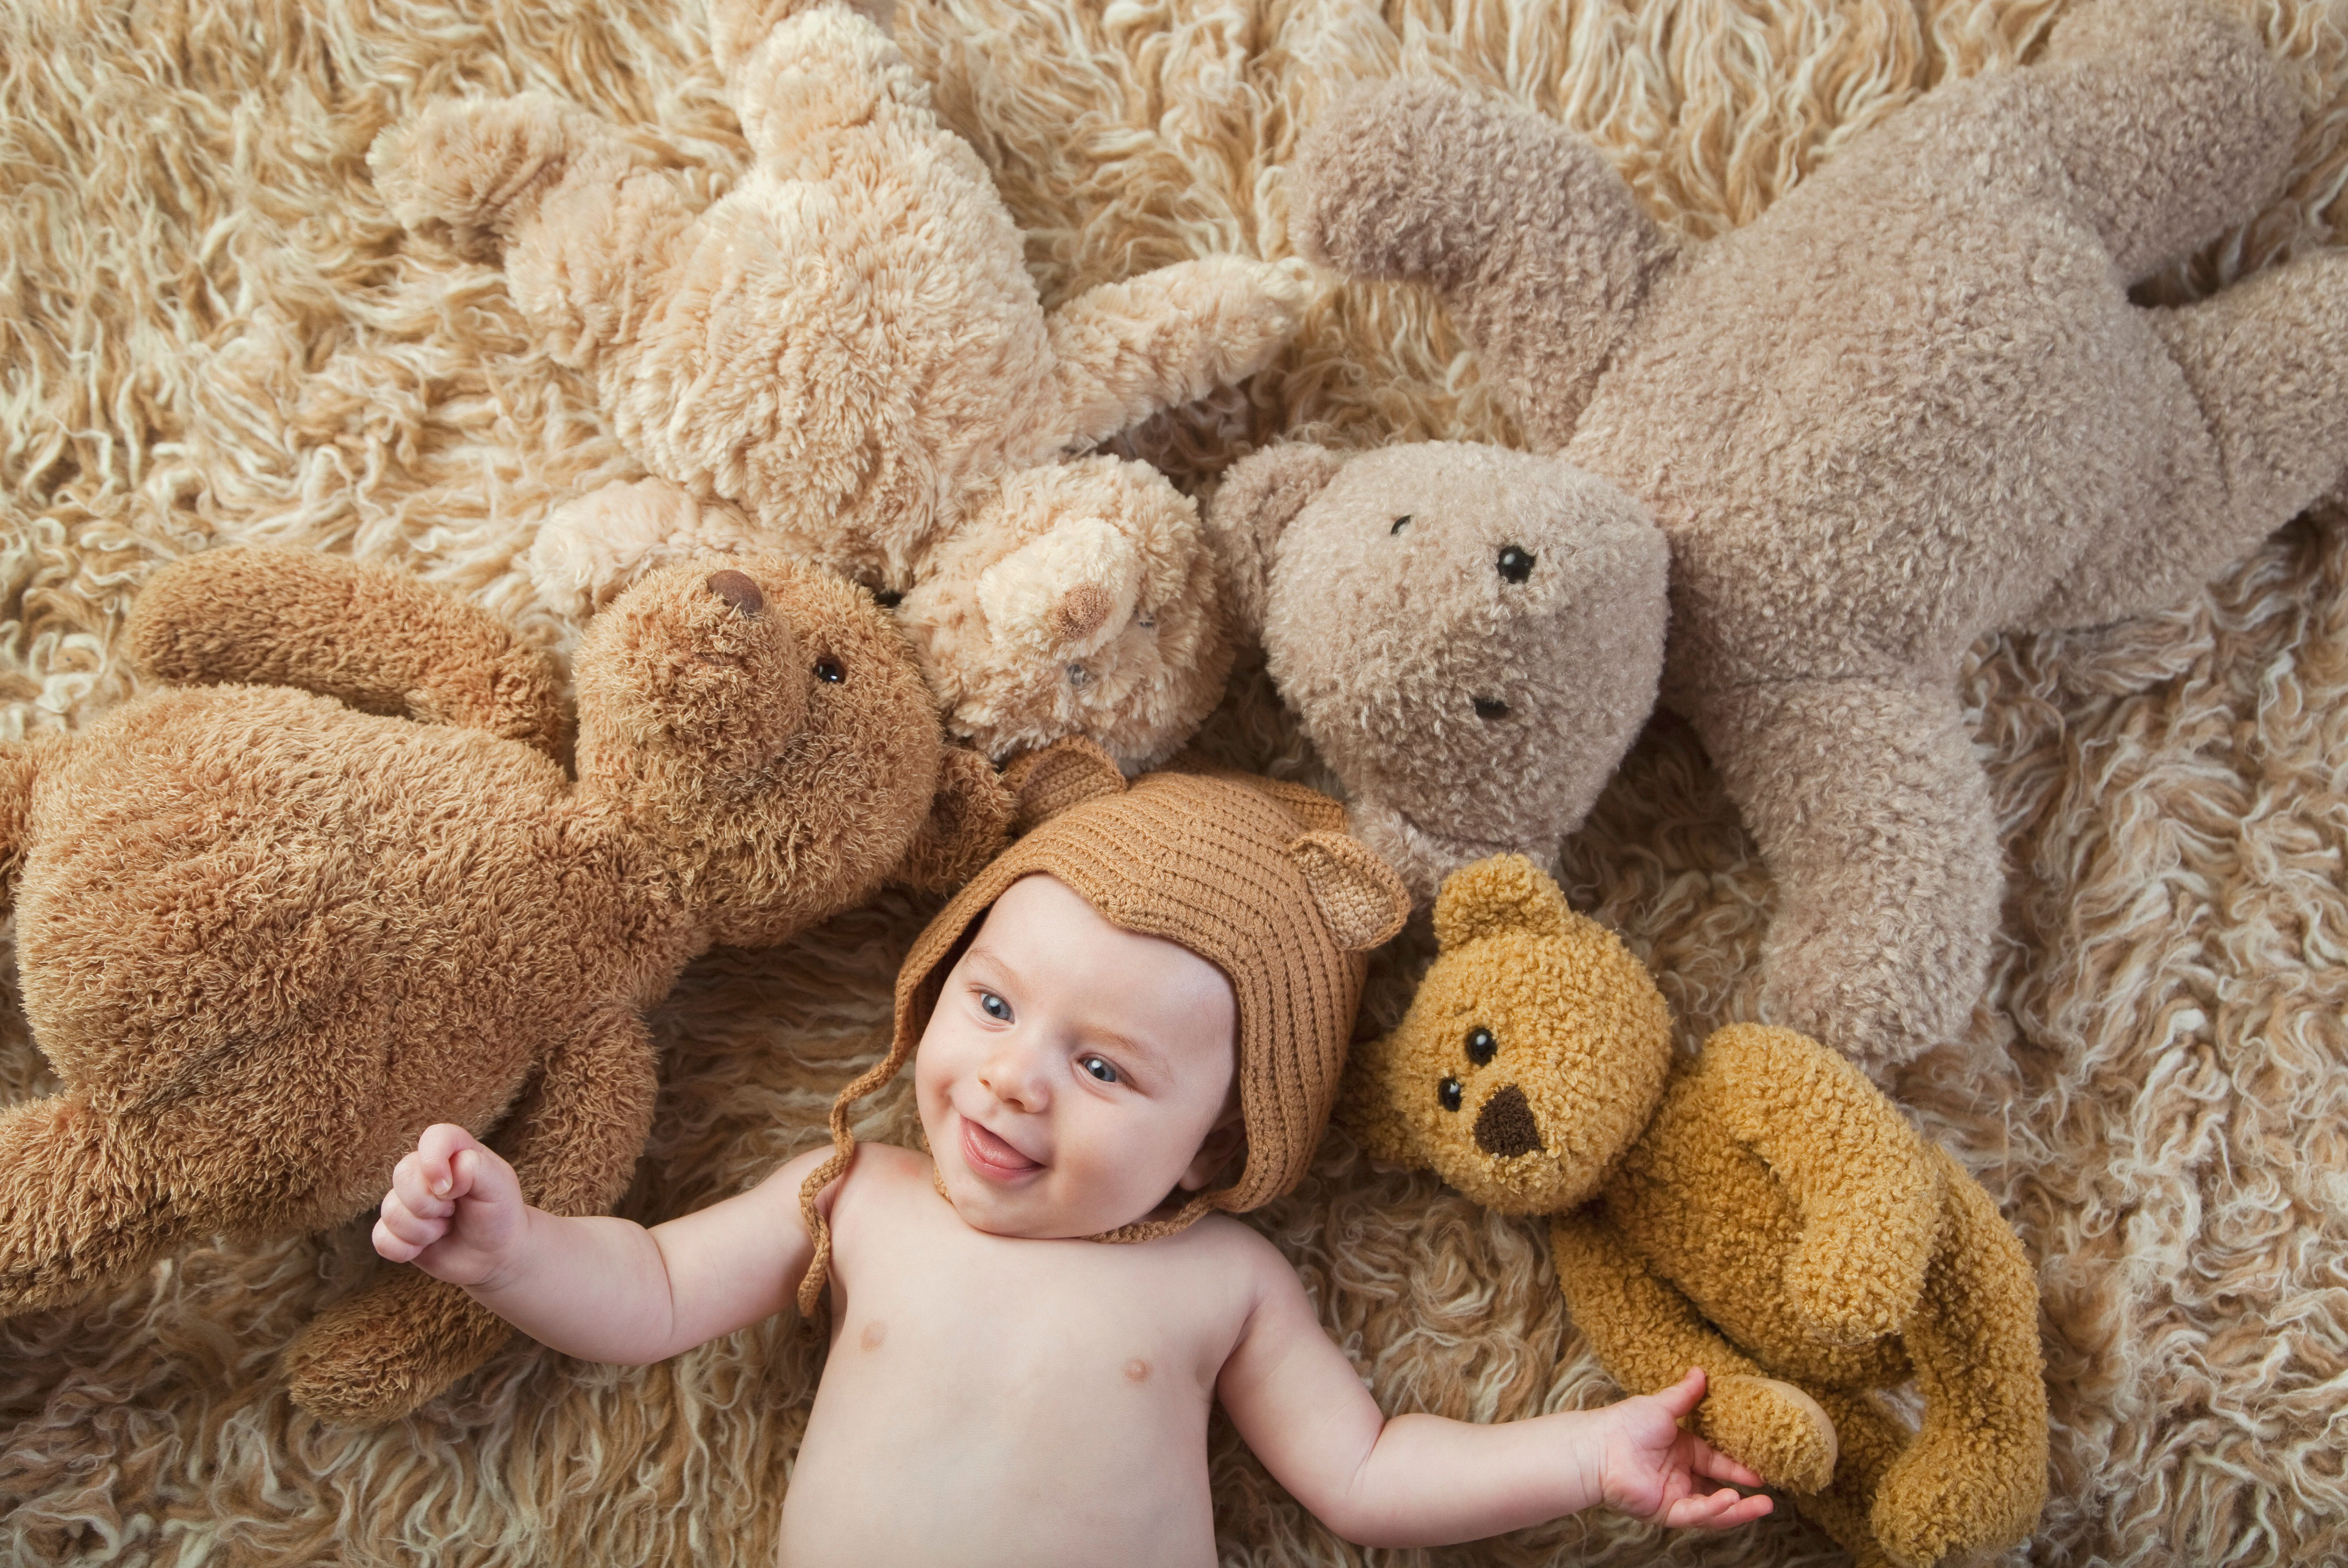 Somebabies are named Bear, not just given stuffed bears.